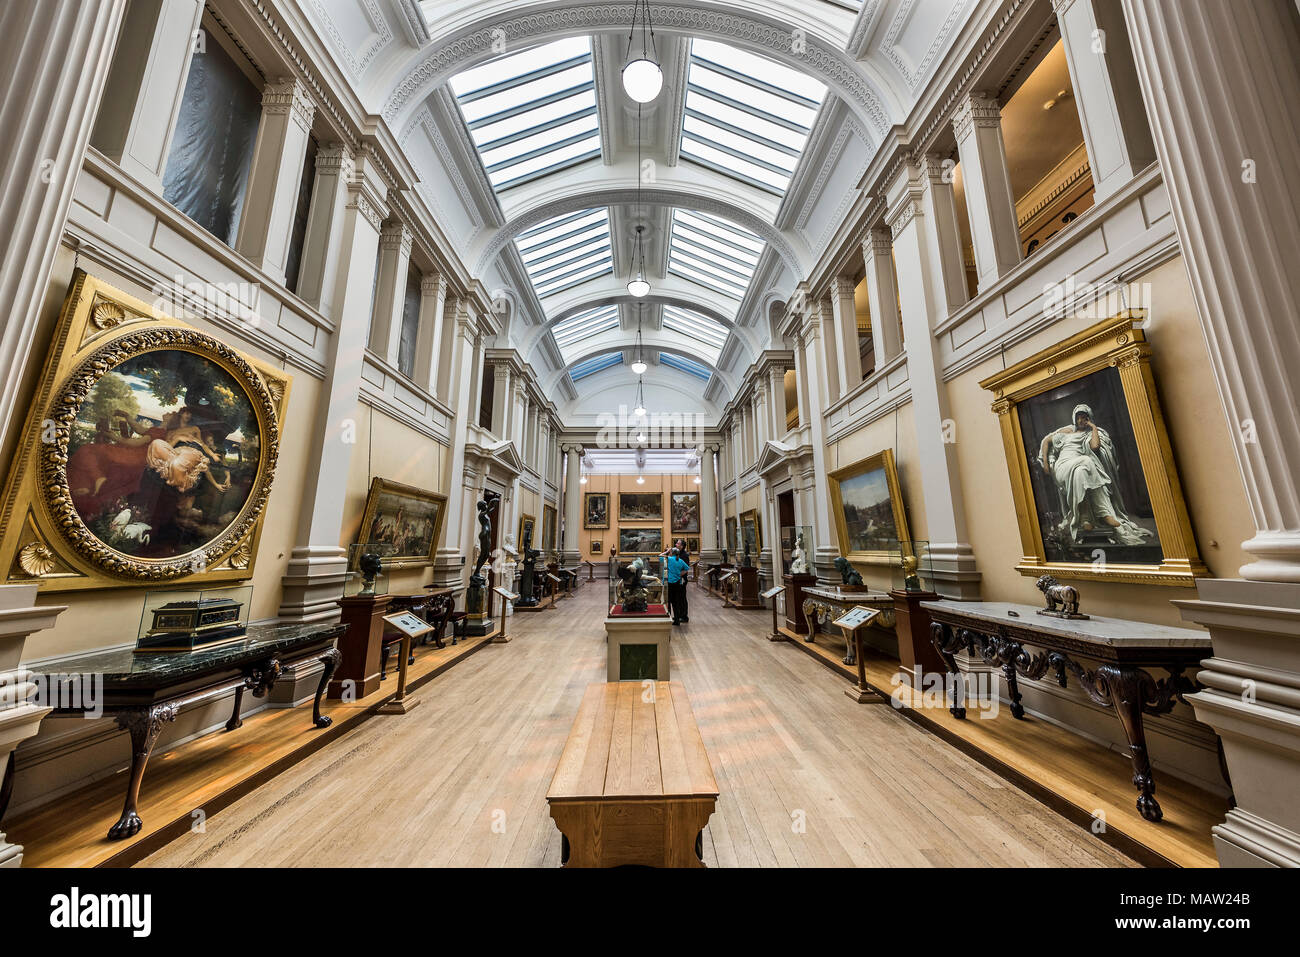 The Lady Lever Art Gallery port sunlight wirral merseyside north west england uk - Stock Image